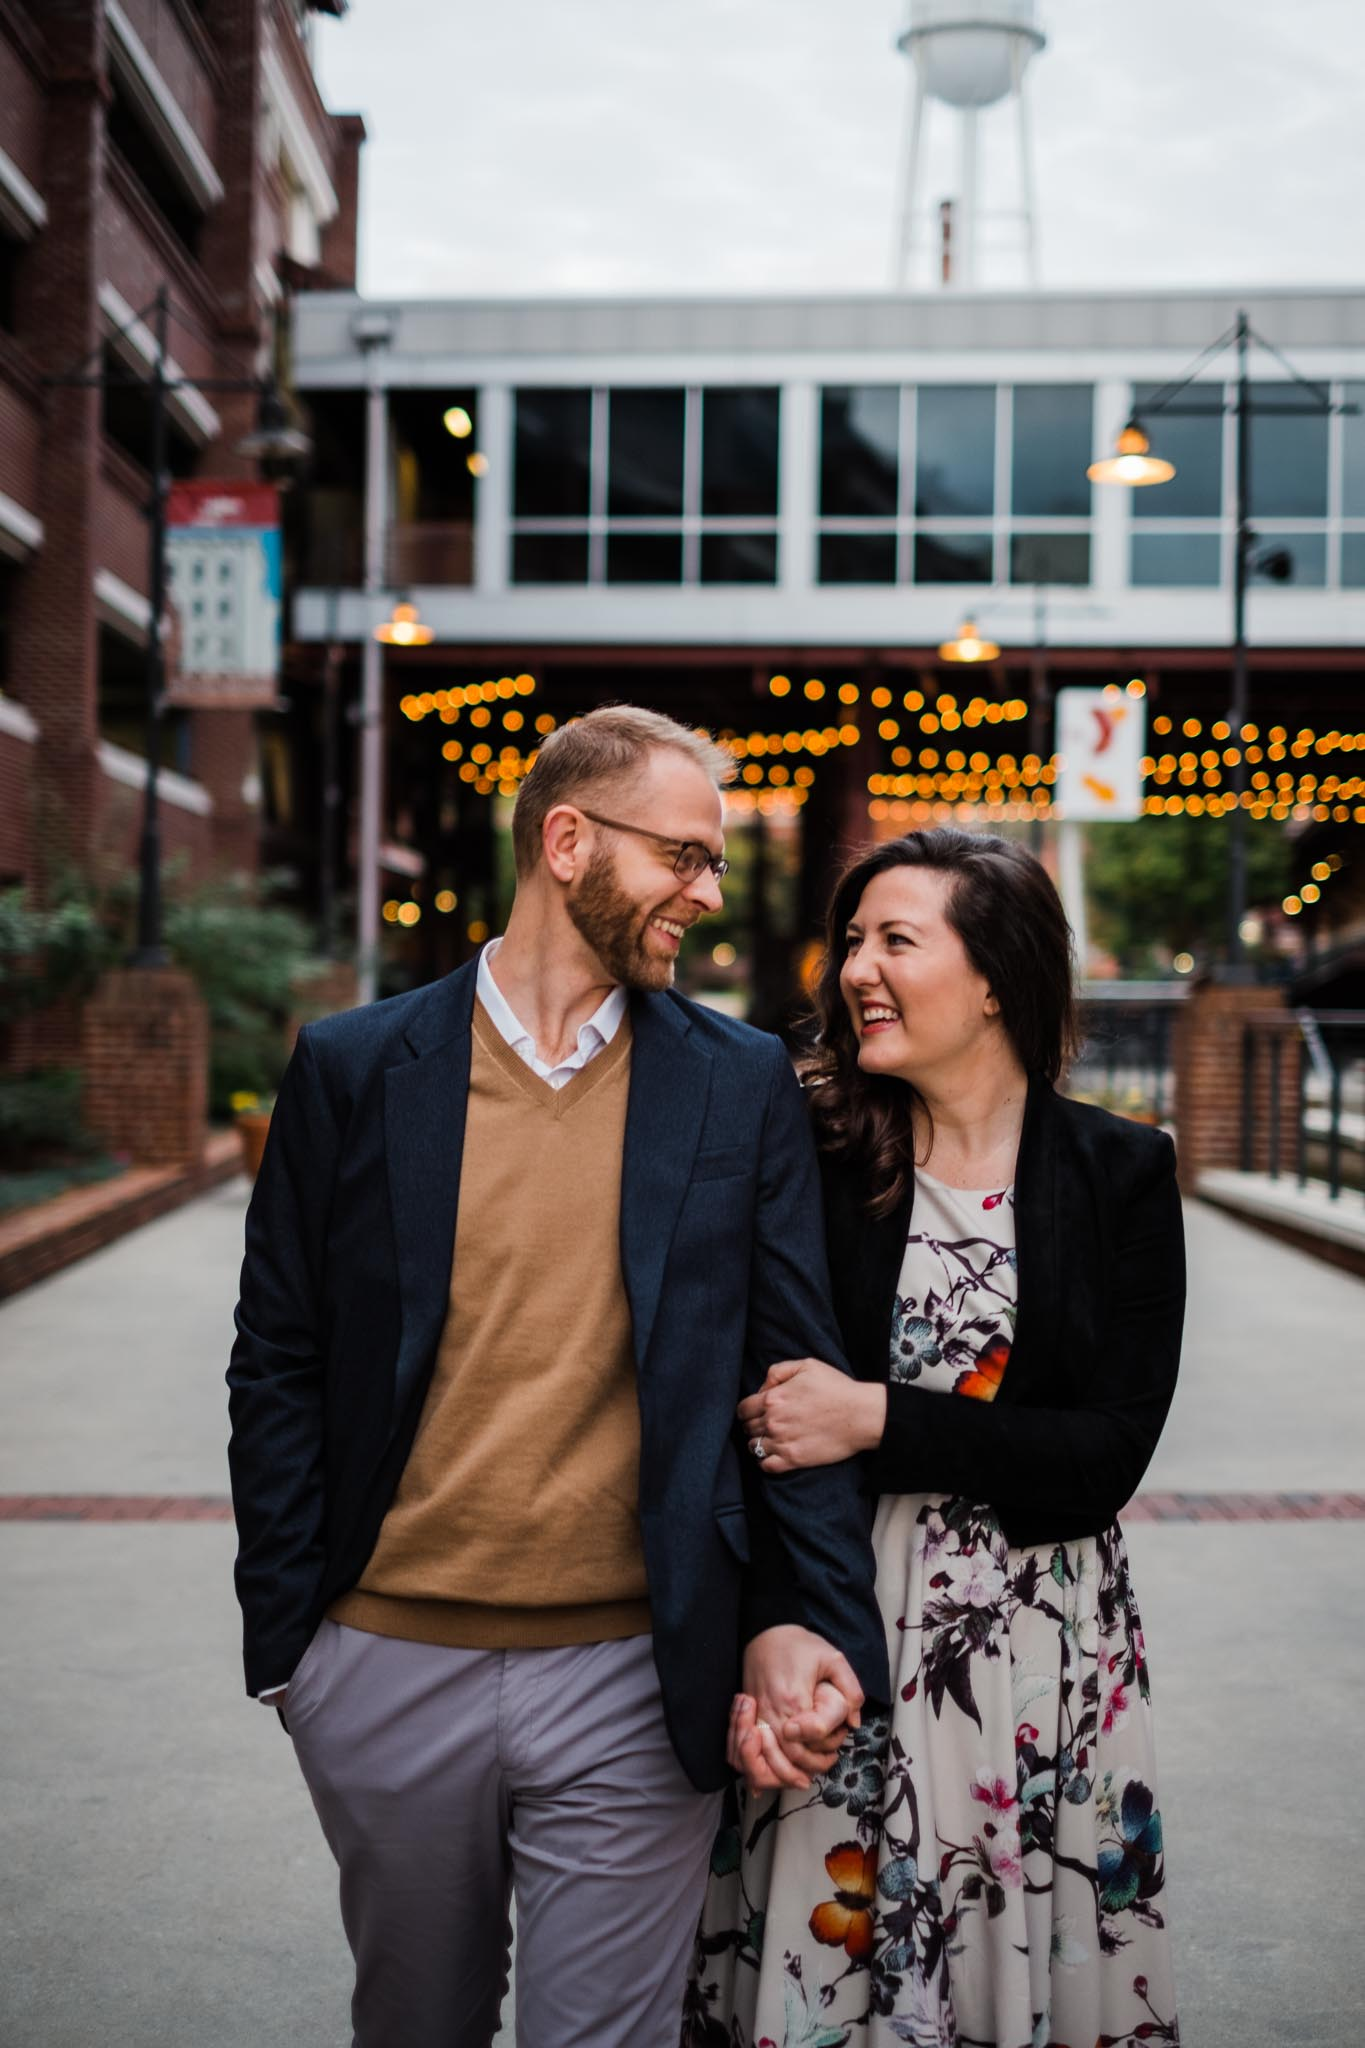 Couple Portrait Session at American Tobacco Campus | Durham NC Photographer | By G. Lin Photography